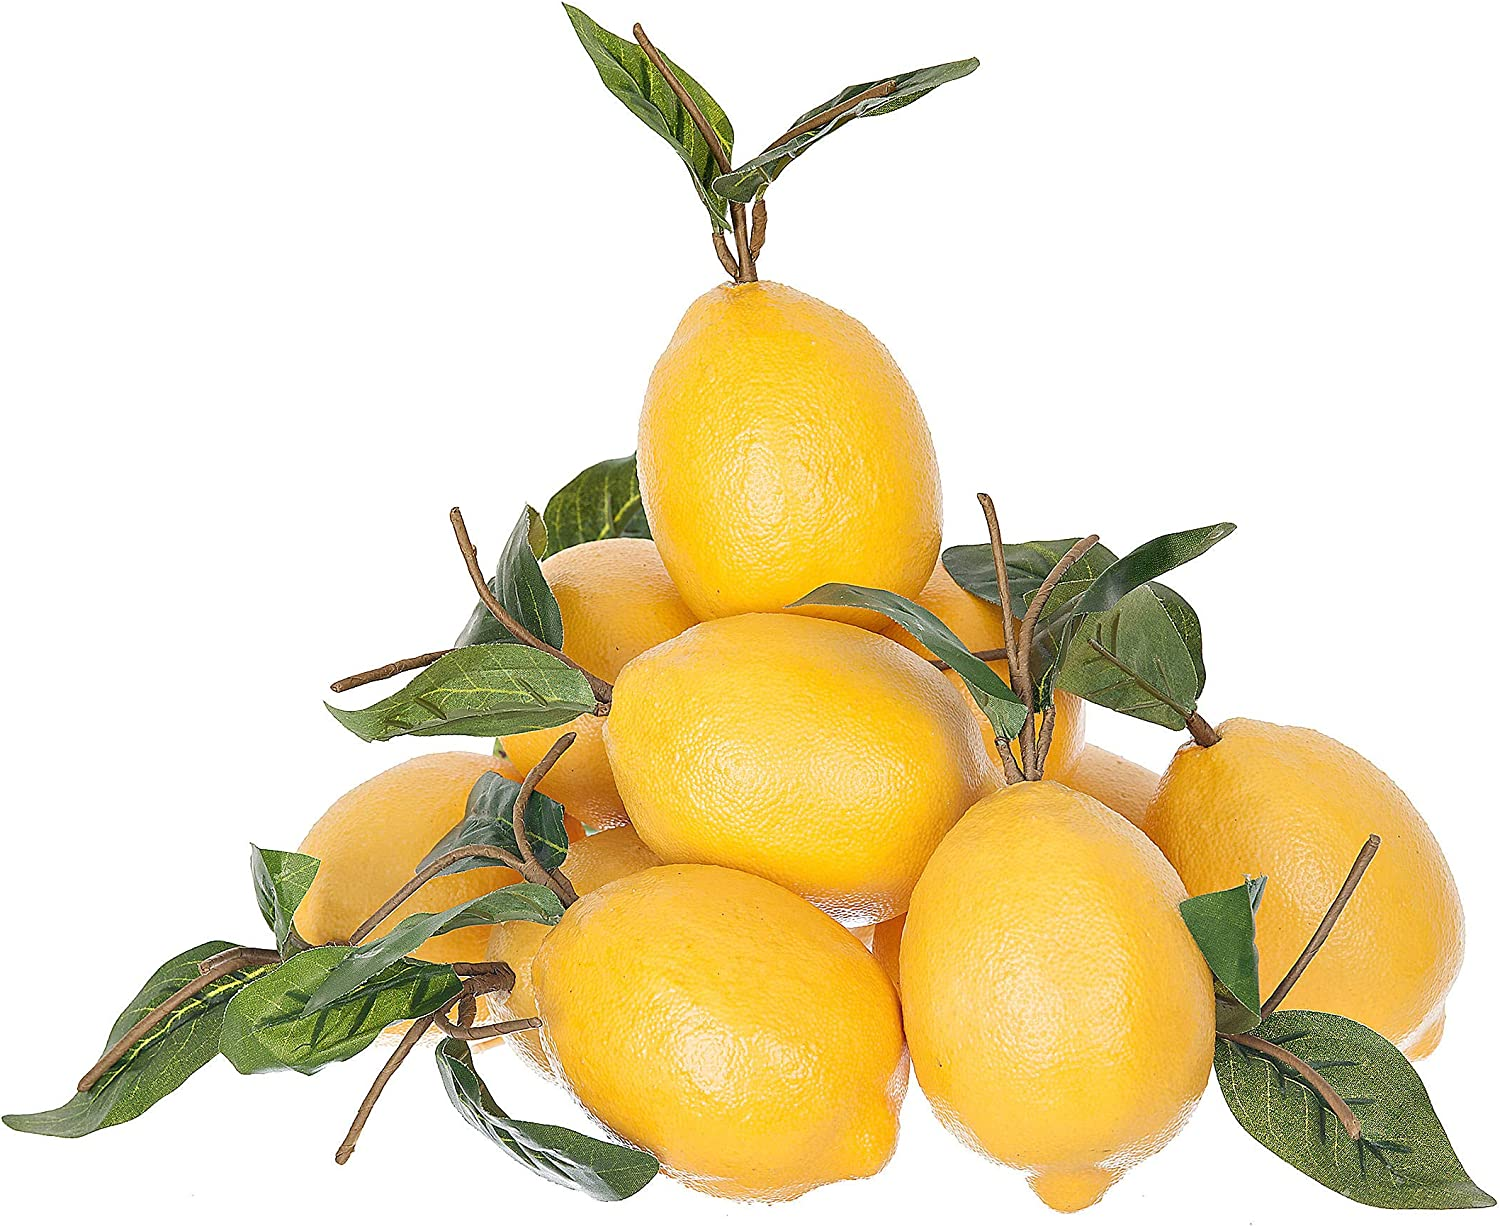 Artificial Fruit Lemons Set Of 12 With Green Leaves Party Decoration Or Home Decor Accent Piece For Kitchen Lifelike Decoration Amazon Co Uk Kitchen Home